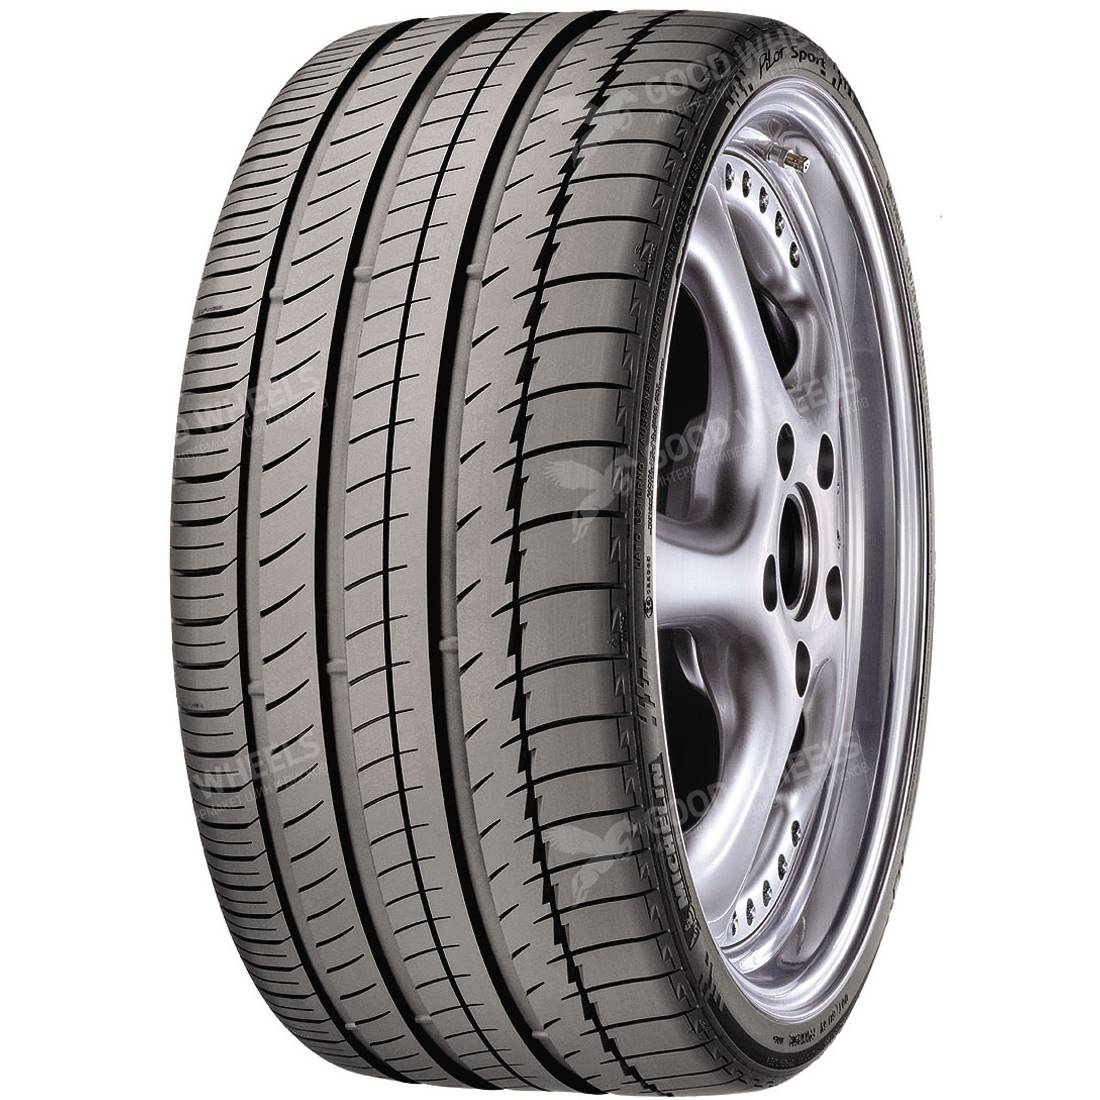 Michelin Pilot Sport 2 (PS2) 265/35 R18 93Y